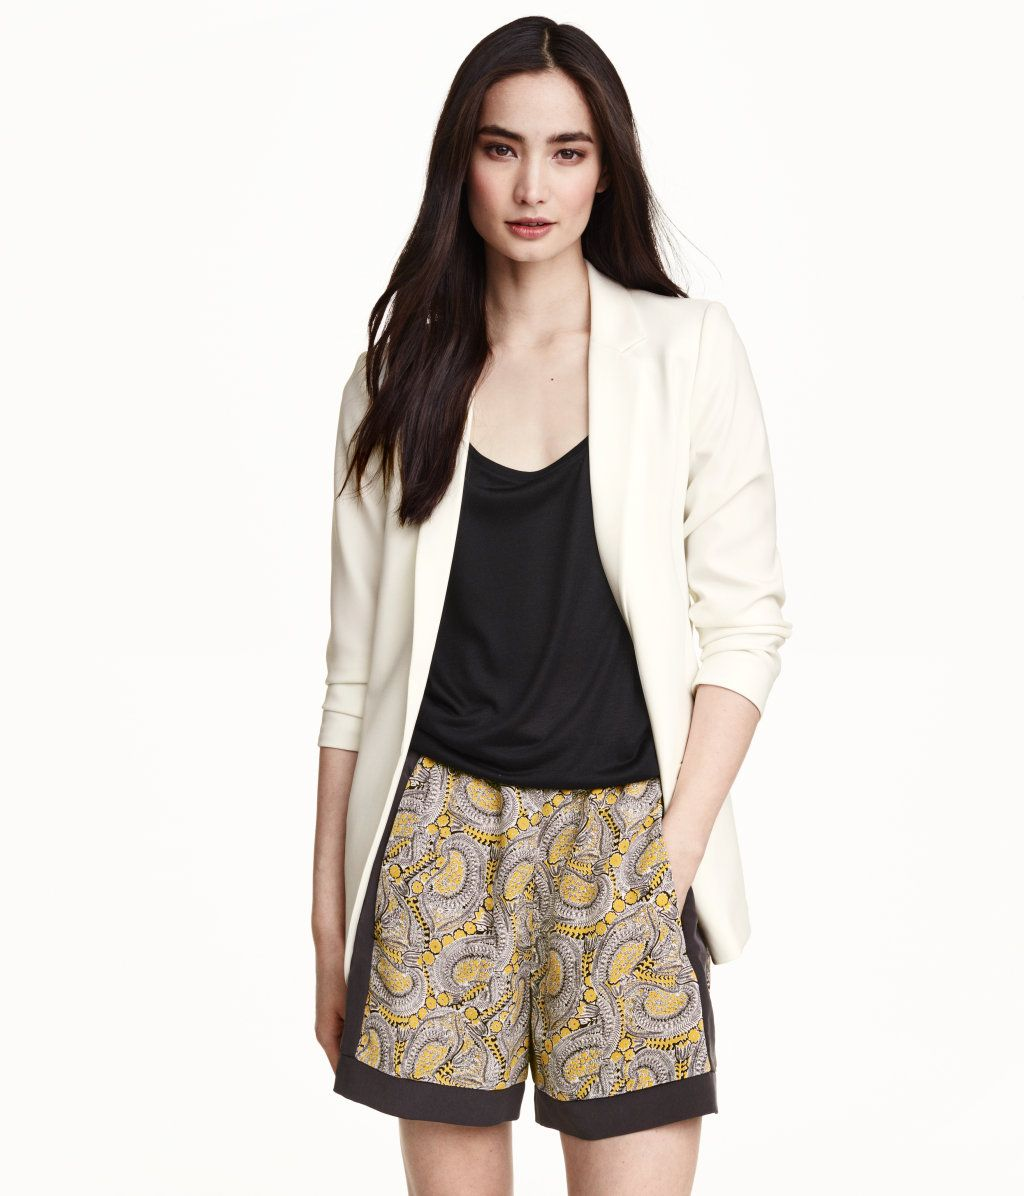 Patterned shorts | Product Detail | H&M